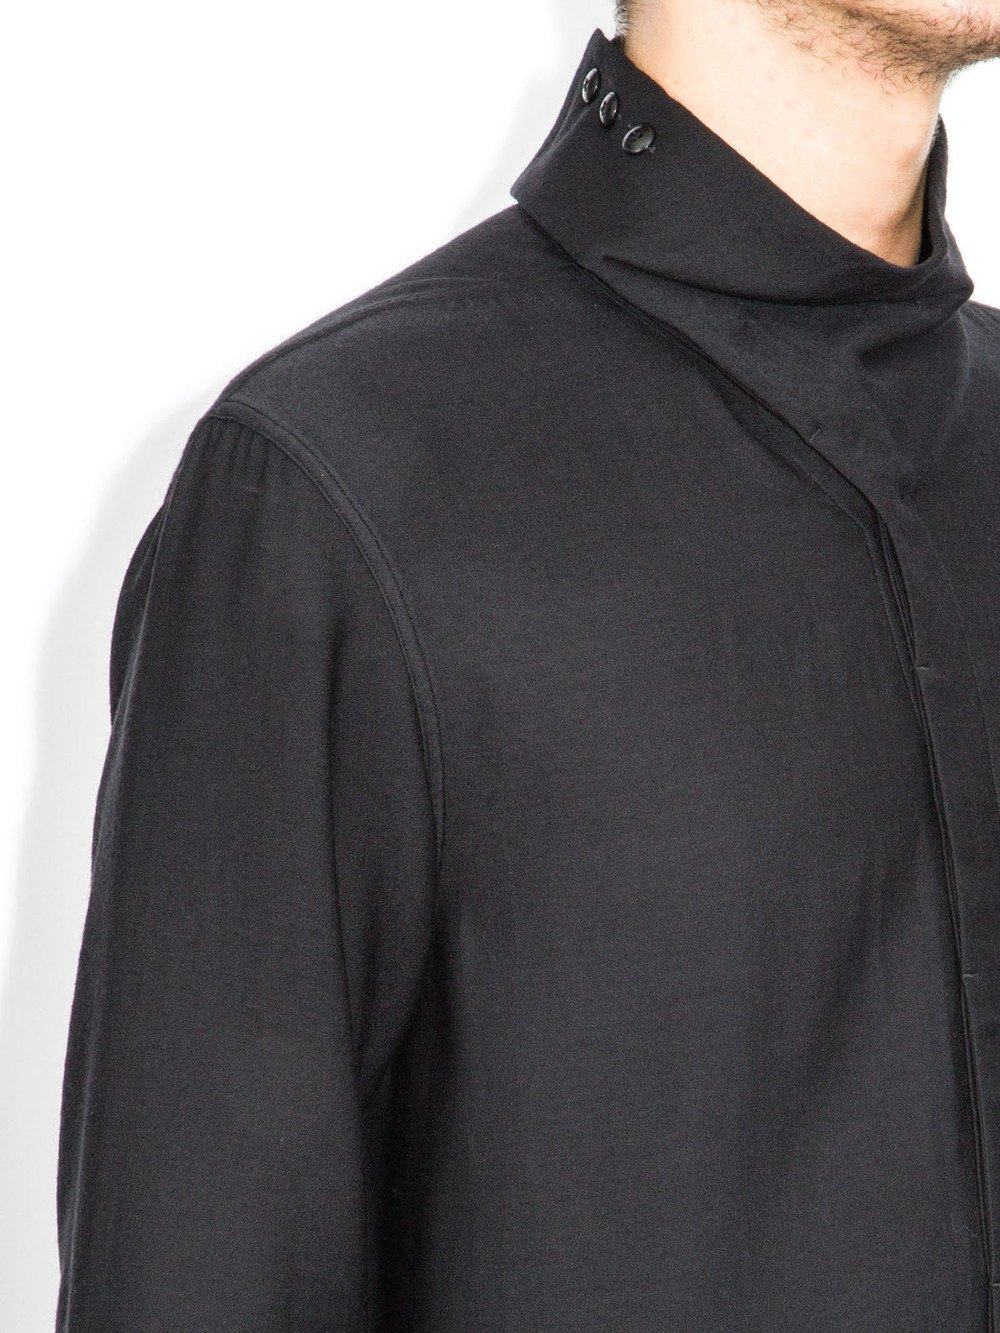 fw14 long sleeve shirt rick owens